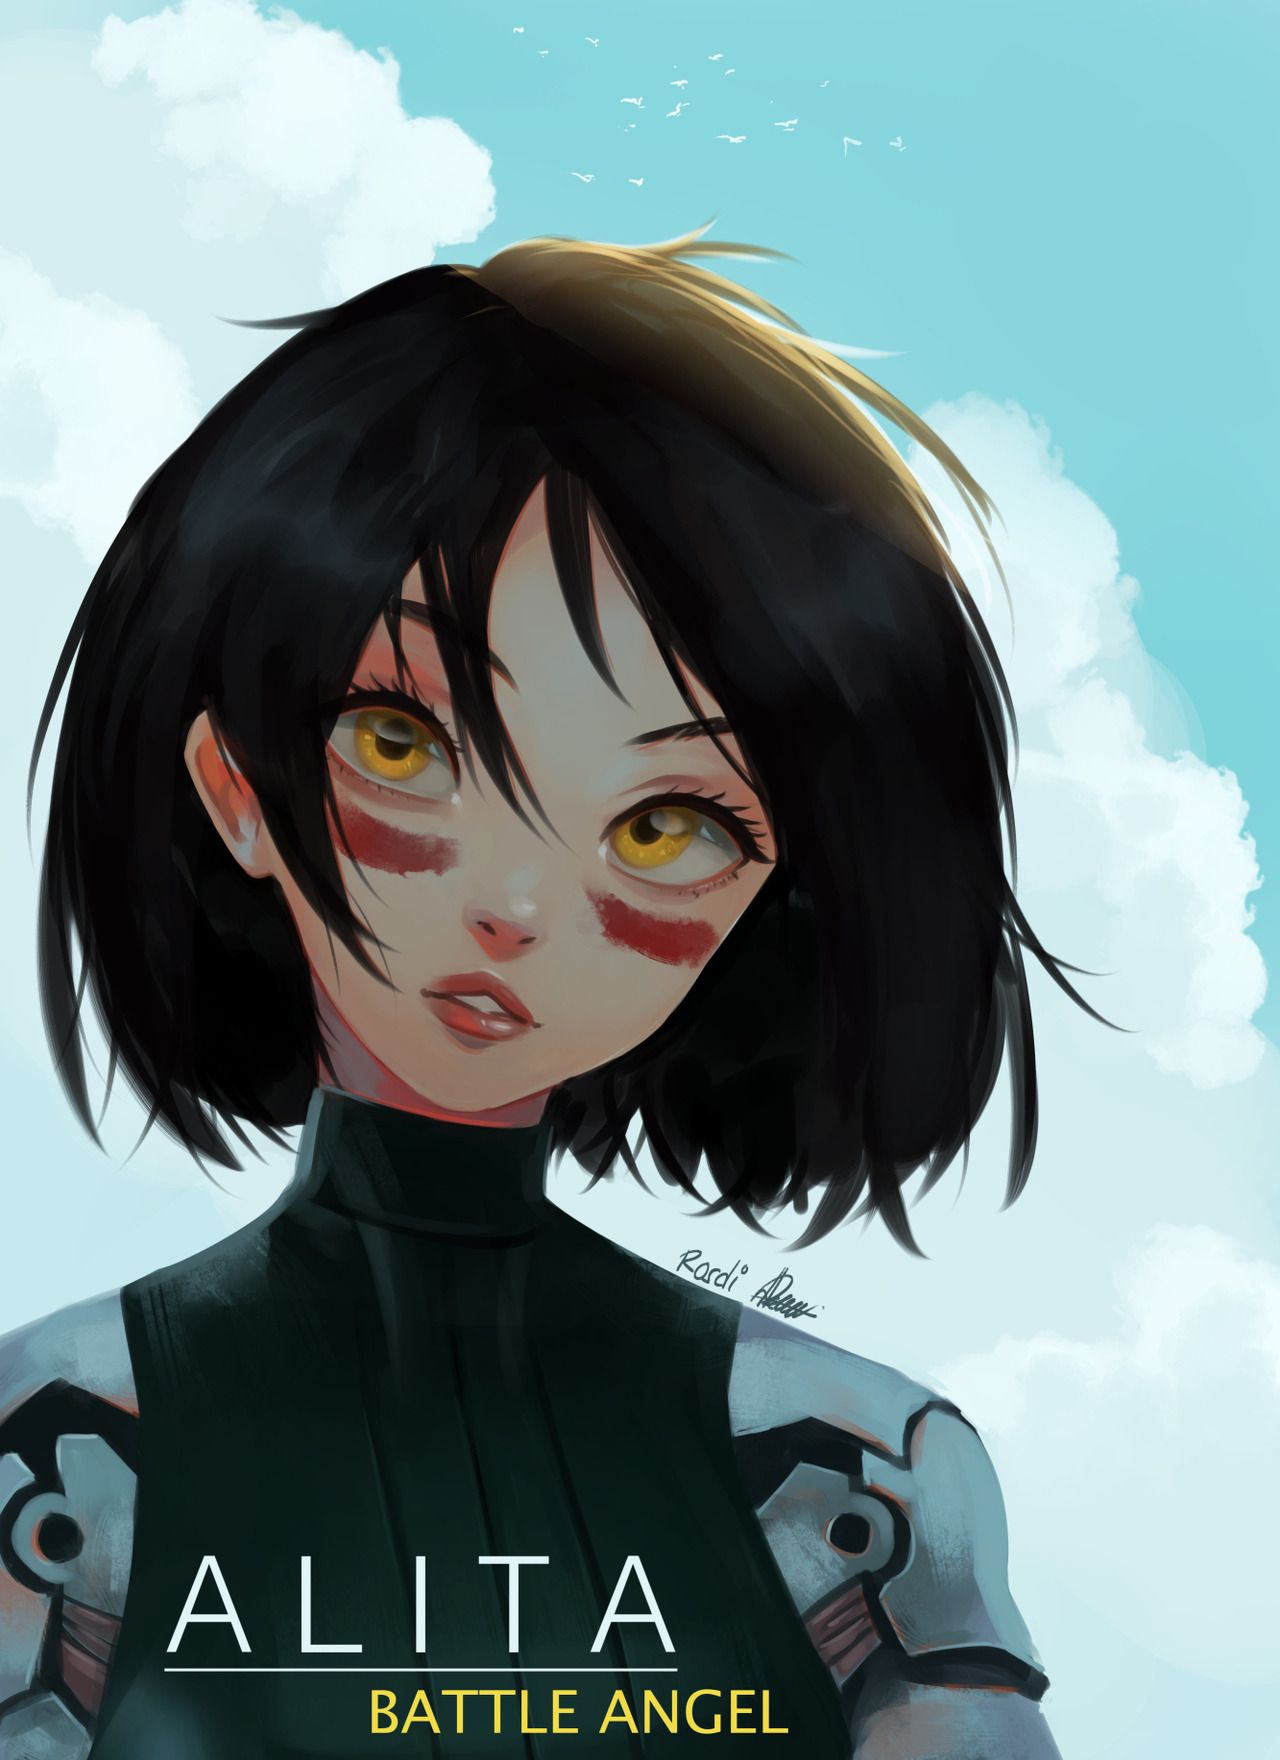 Pin By Marc Pommier On Anime Characters Battle Angel Alita Anime Anime Characters